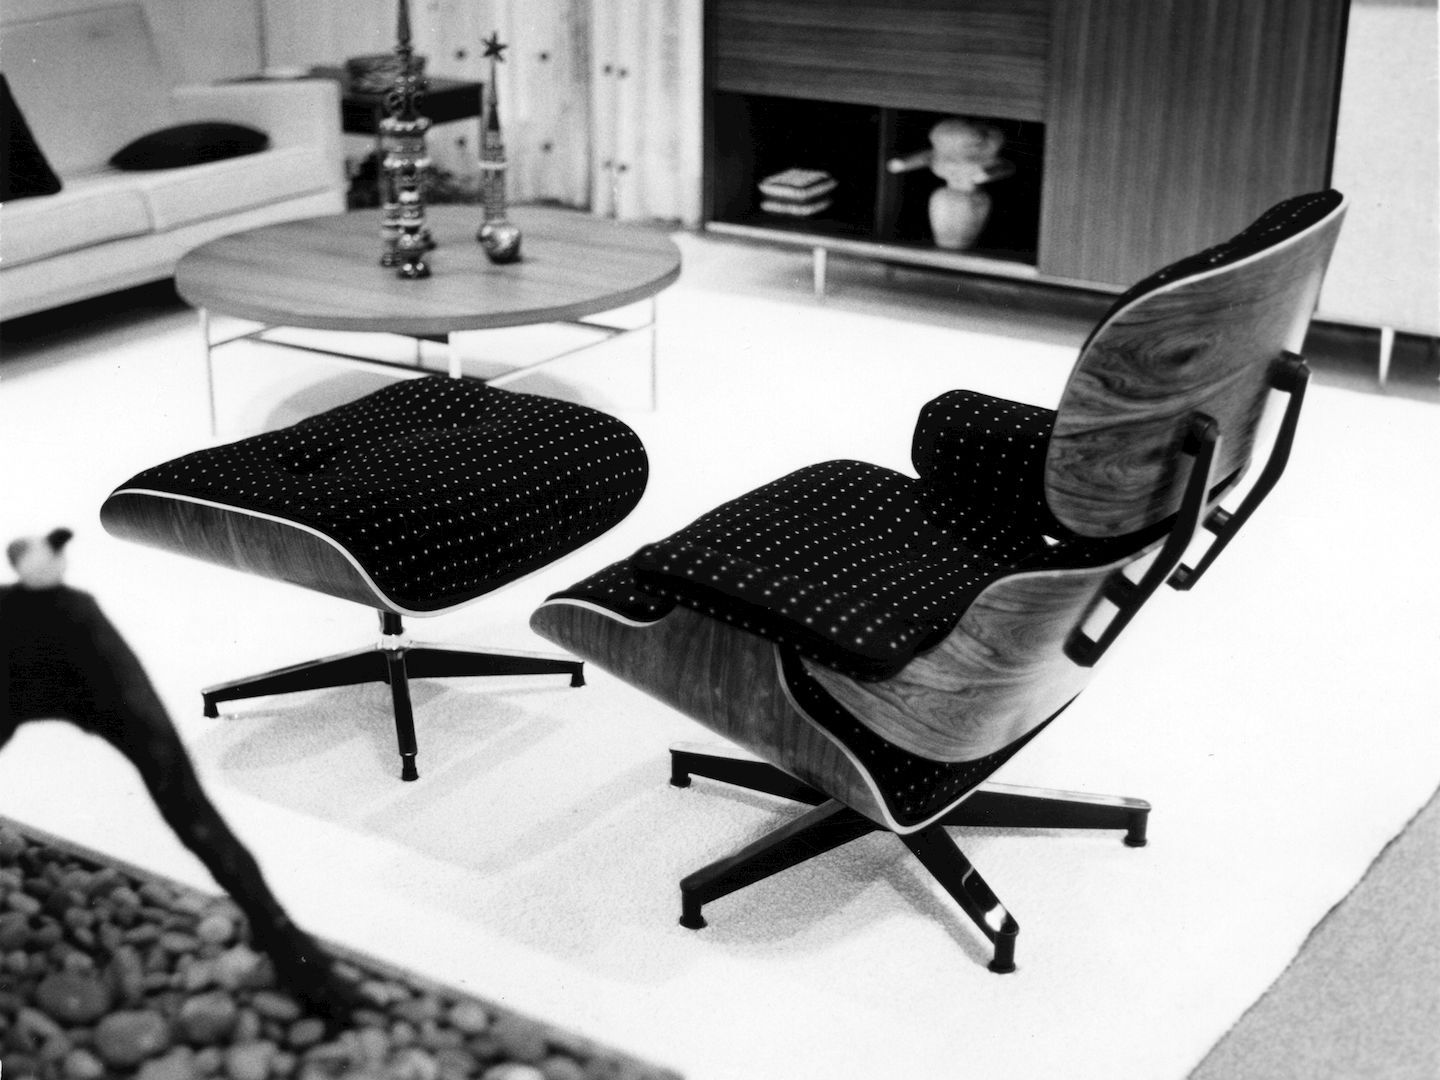 Eames lounge chair and ottoman in fabric vitra image eames office llc